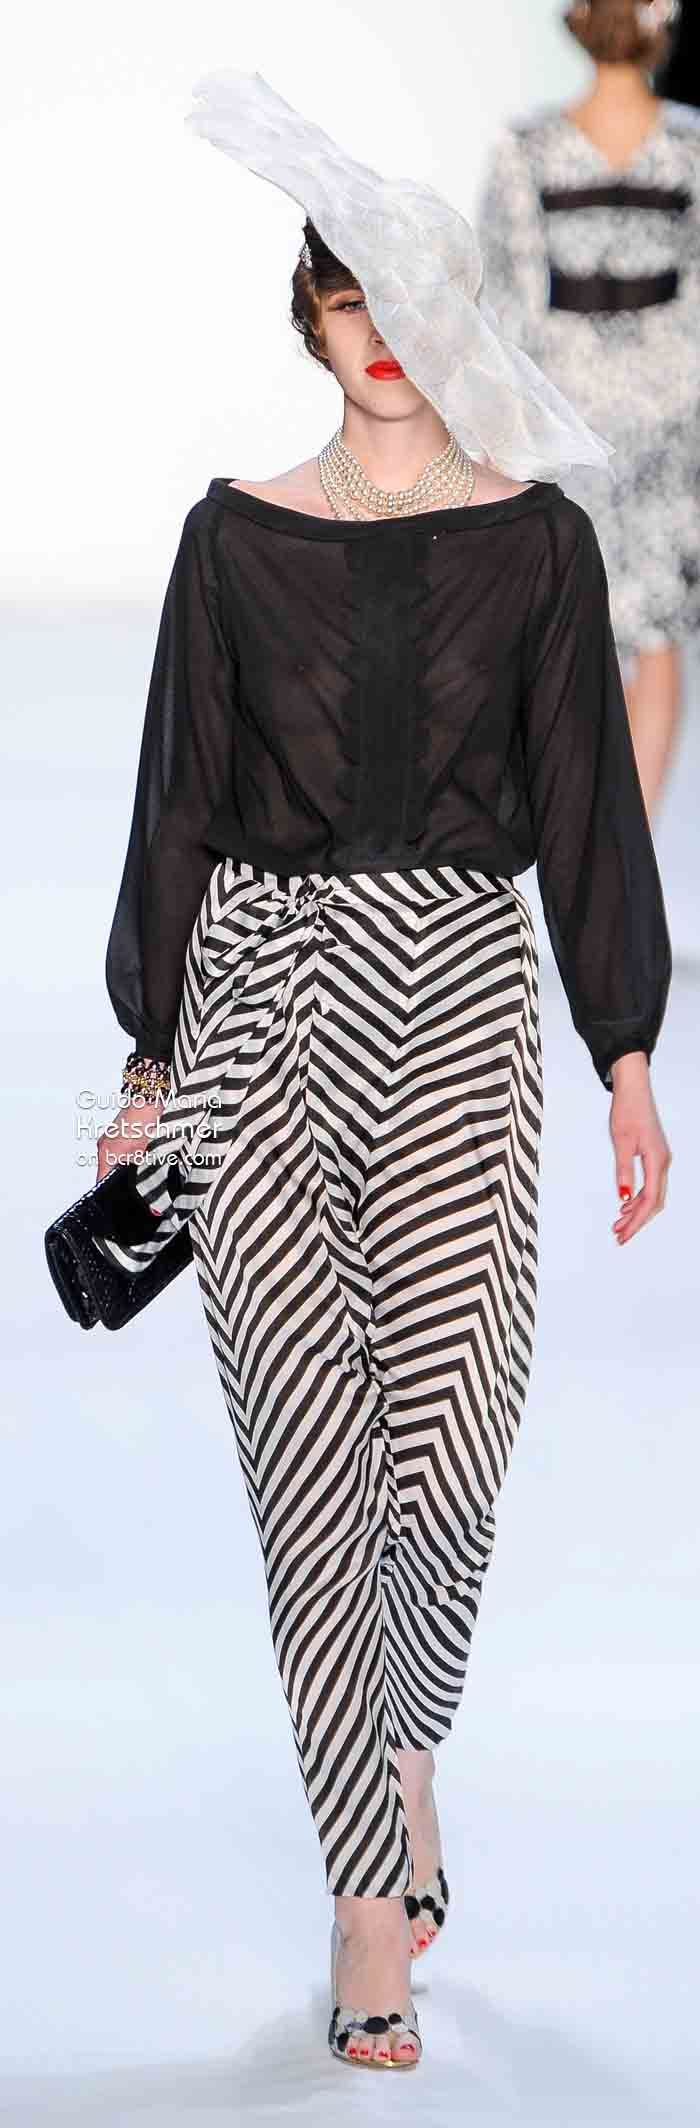 Guido Maria Kretschmer Spring 2014 Ready to Wear Berlin